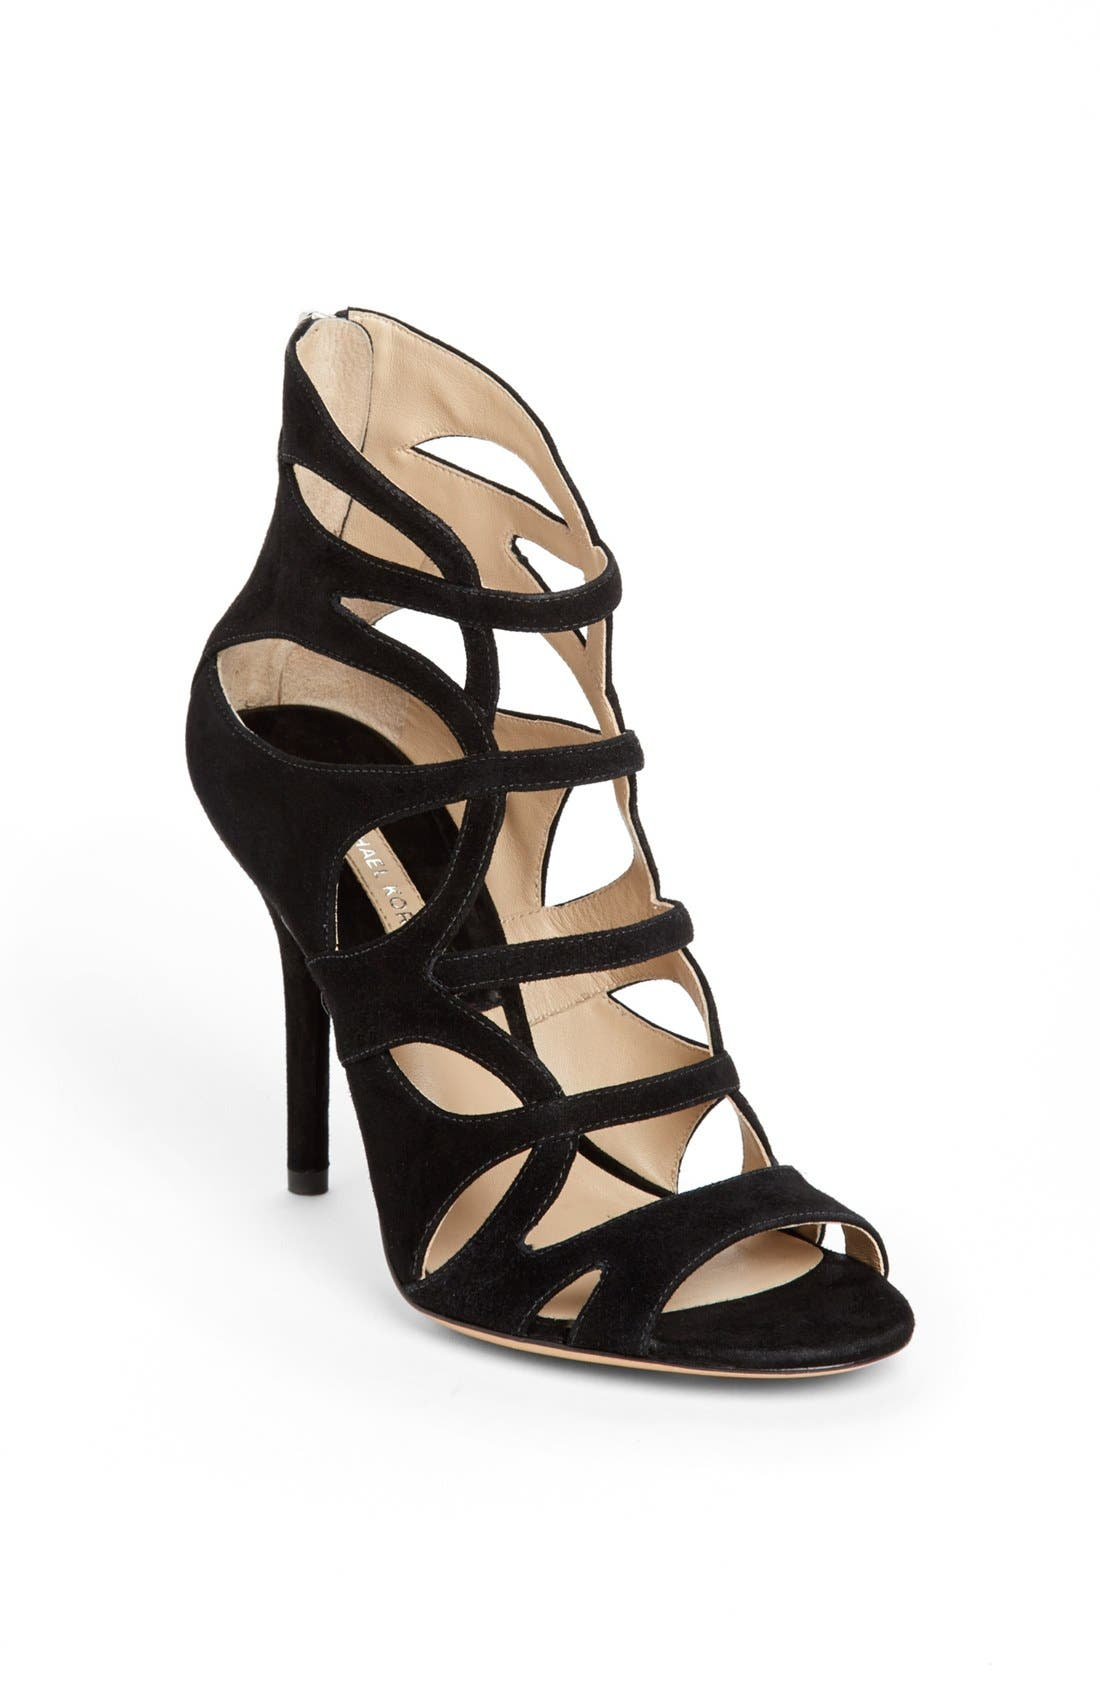 Alternate Image 1 Selected - Michael Kors 'Casey' Sandal